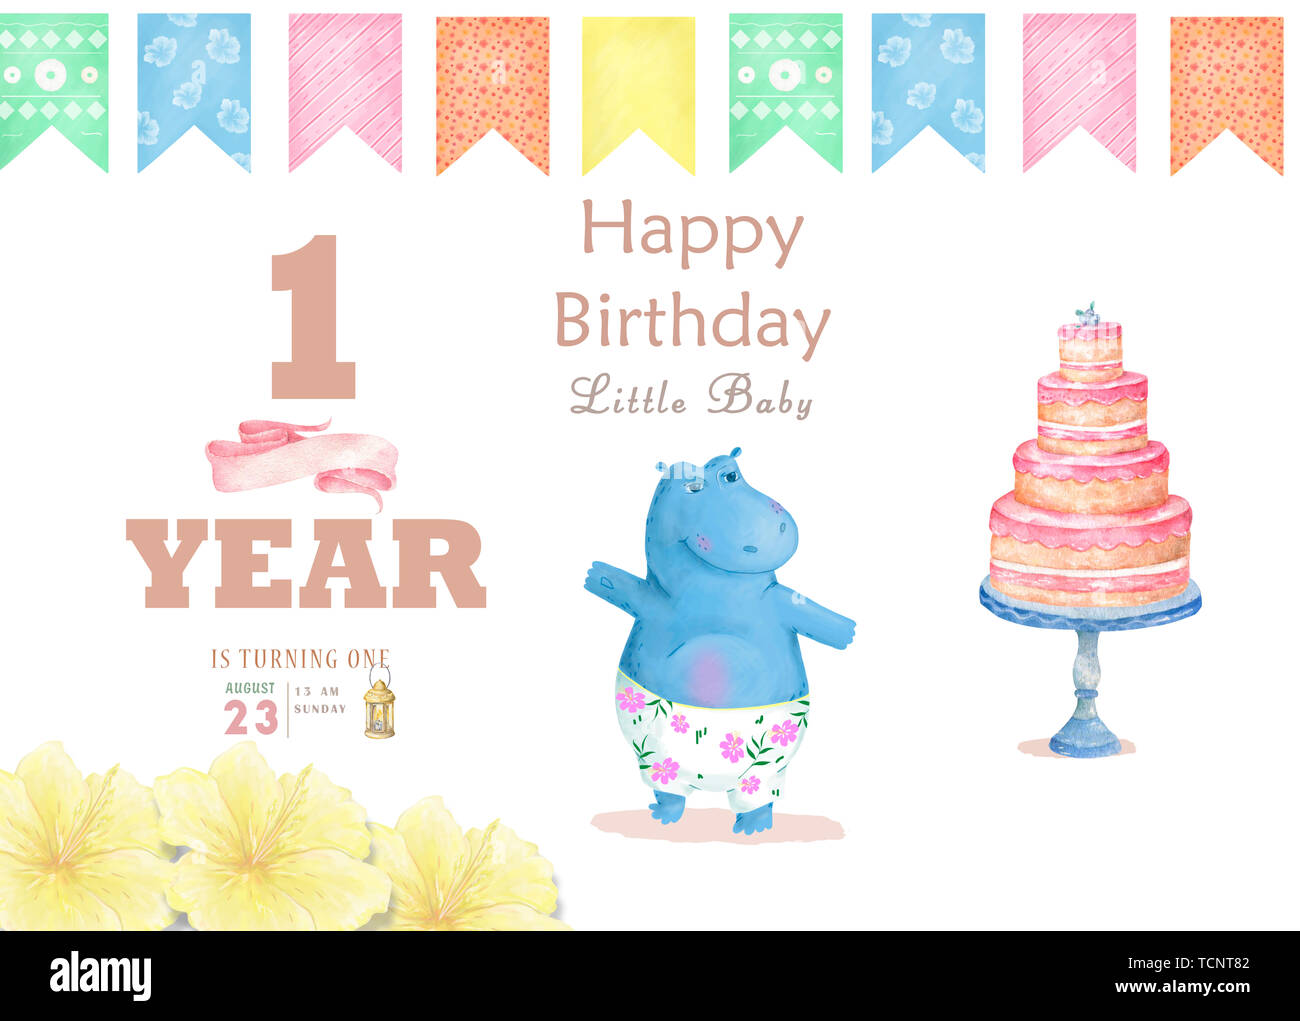 Birthday Card With Cartoon Funny Hippopotamus Colorful Illustration Watercolor Animal For Greeting Invite Celebration Zoo Beauty Cocktail Stock Photo Alamy